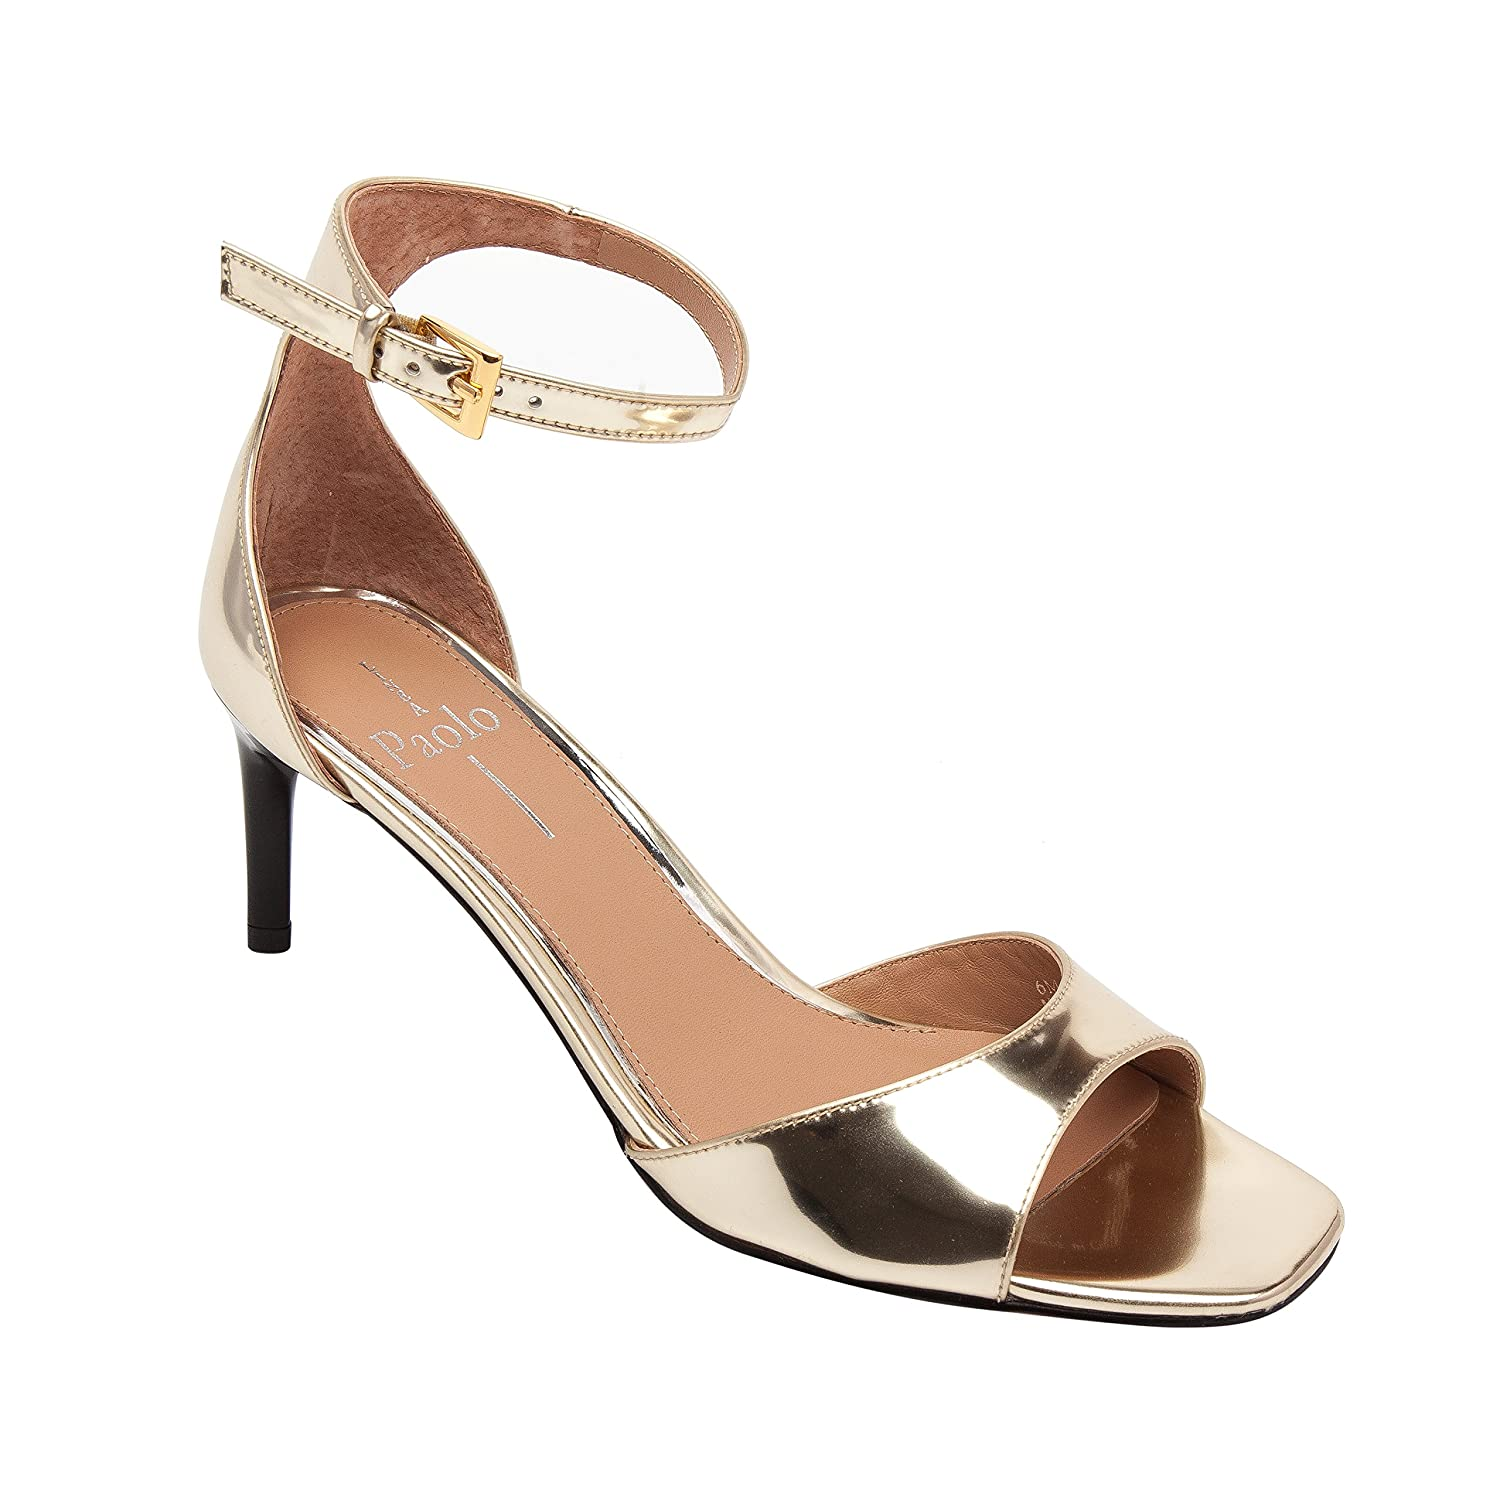 Linea Paolo Helen | Women's Mid-Height Leather Ankle Strap Sandal B079578Q1Y 10 M US|Gold Leather